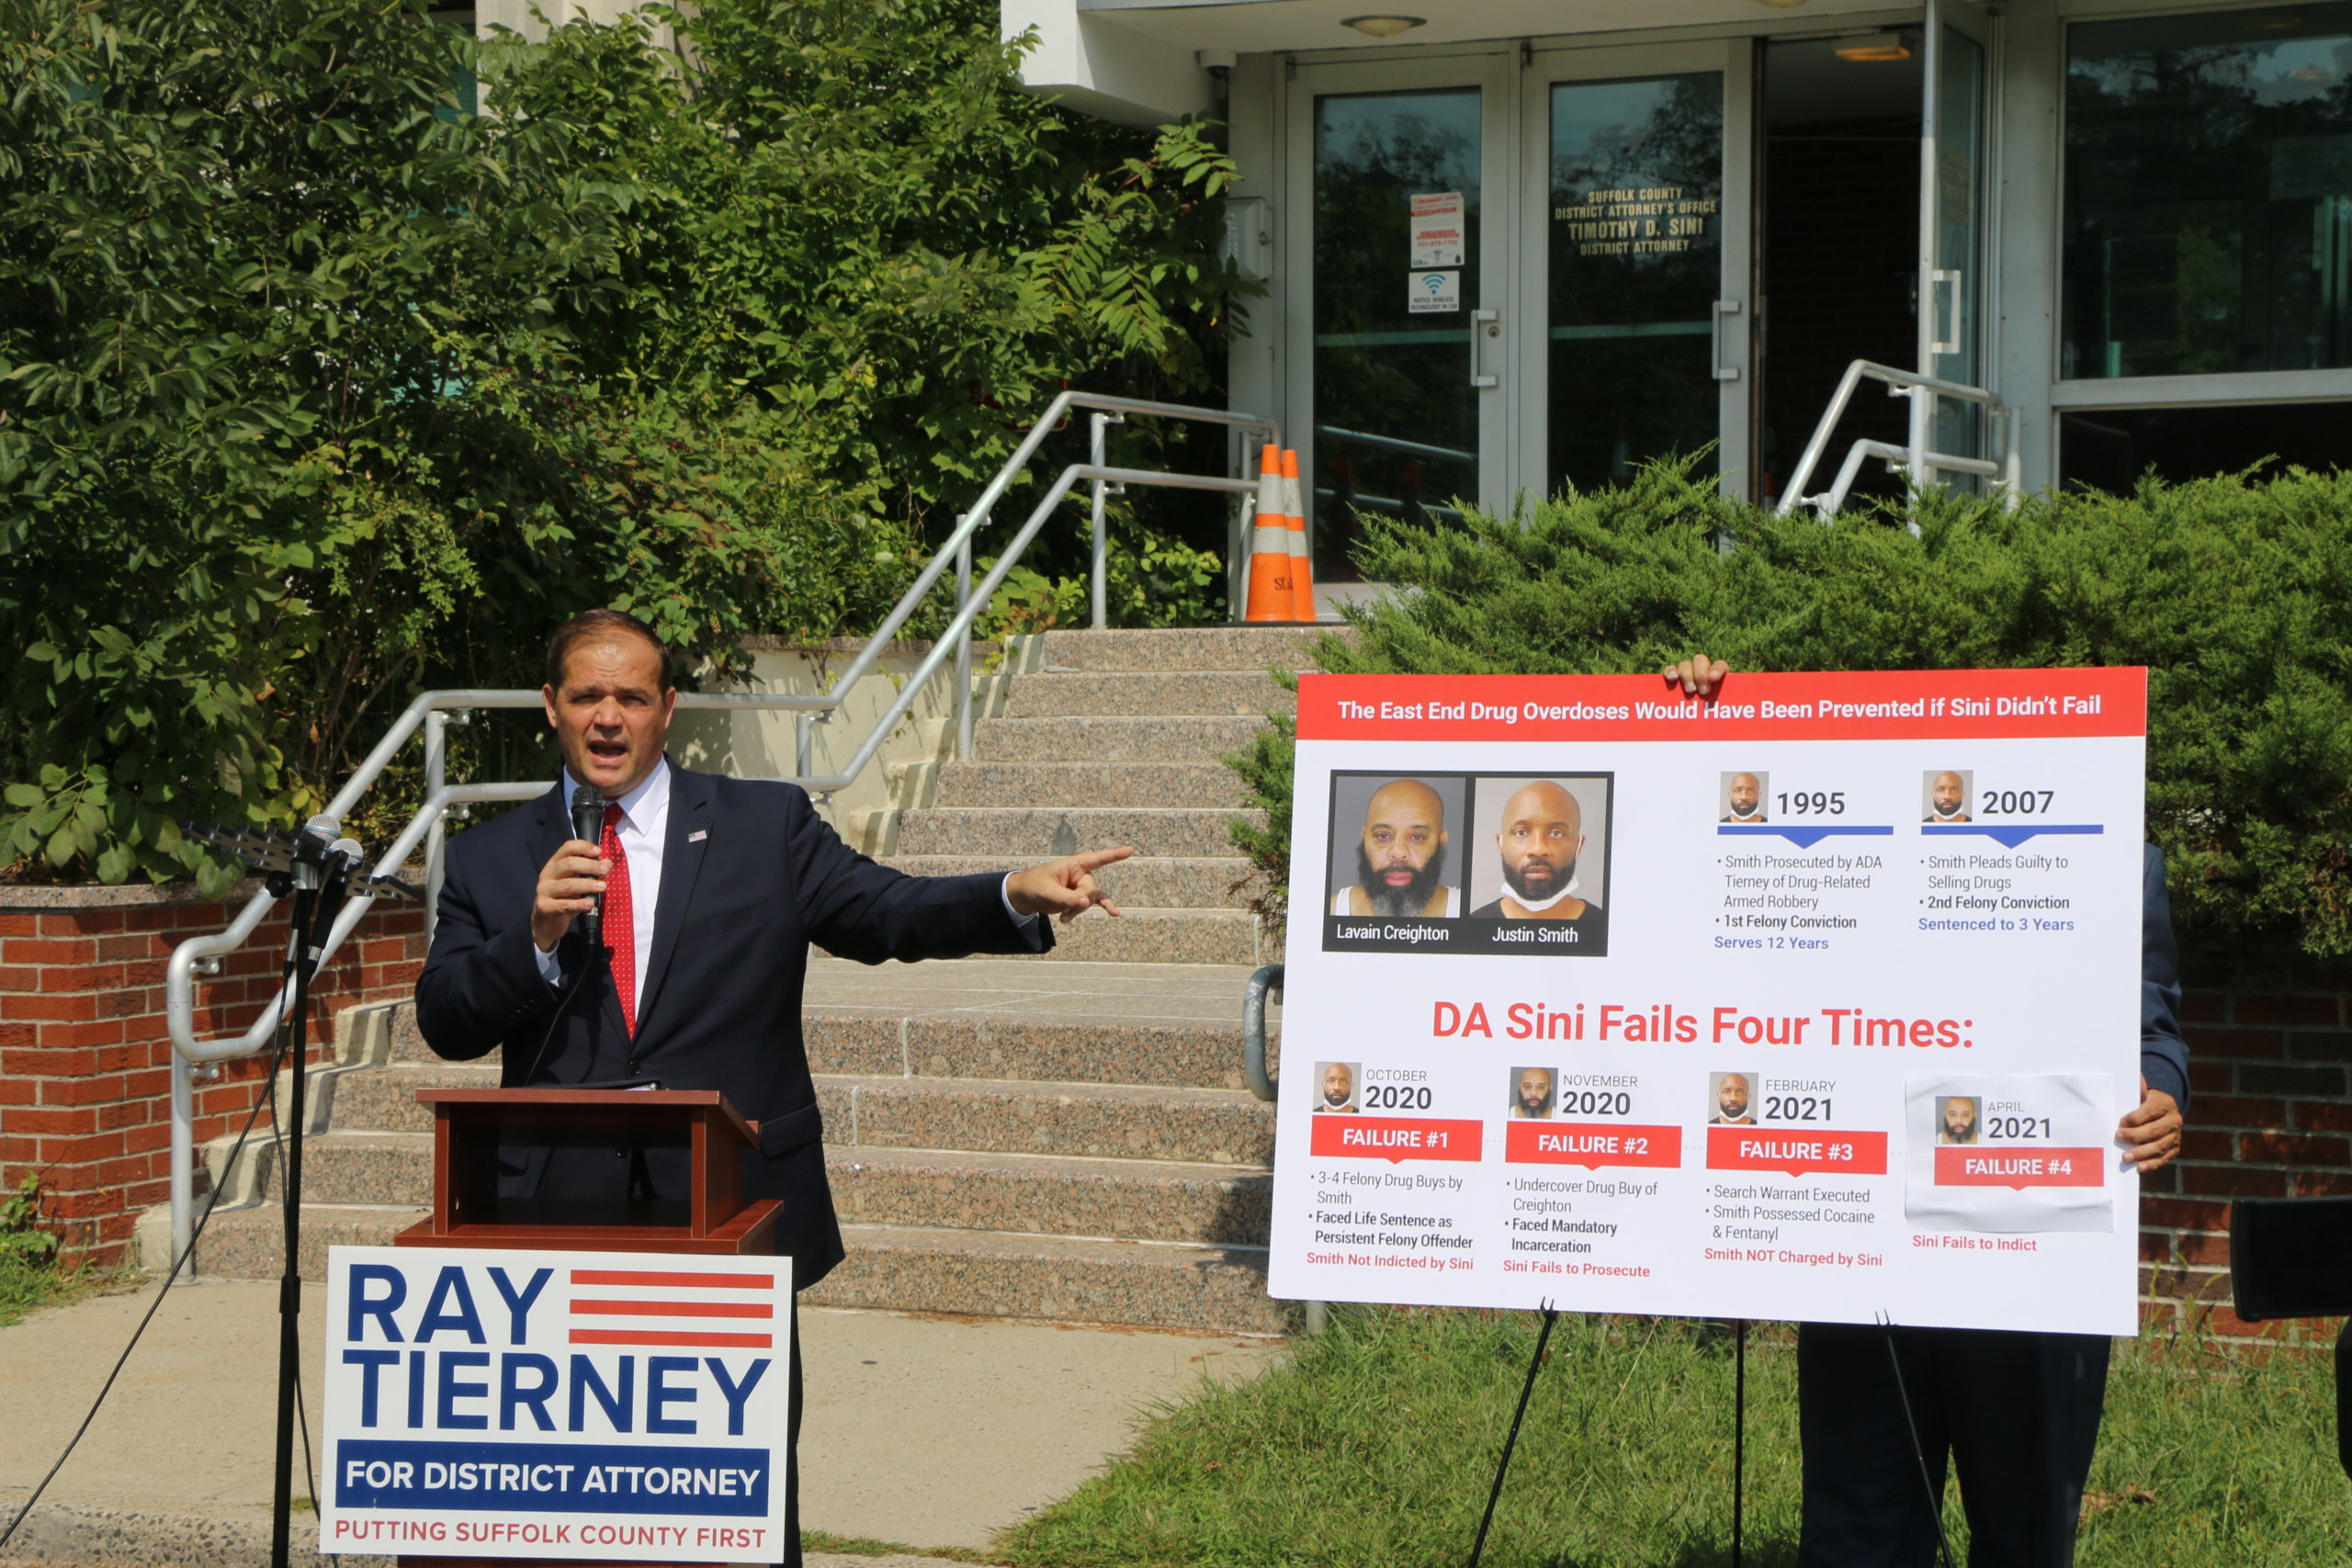 Ray Tierney held a press conference outside the Suffolk DA's office in Hauppauge on September 8.